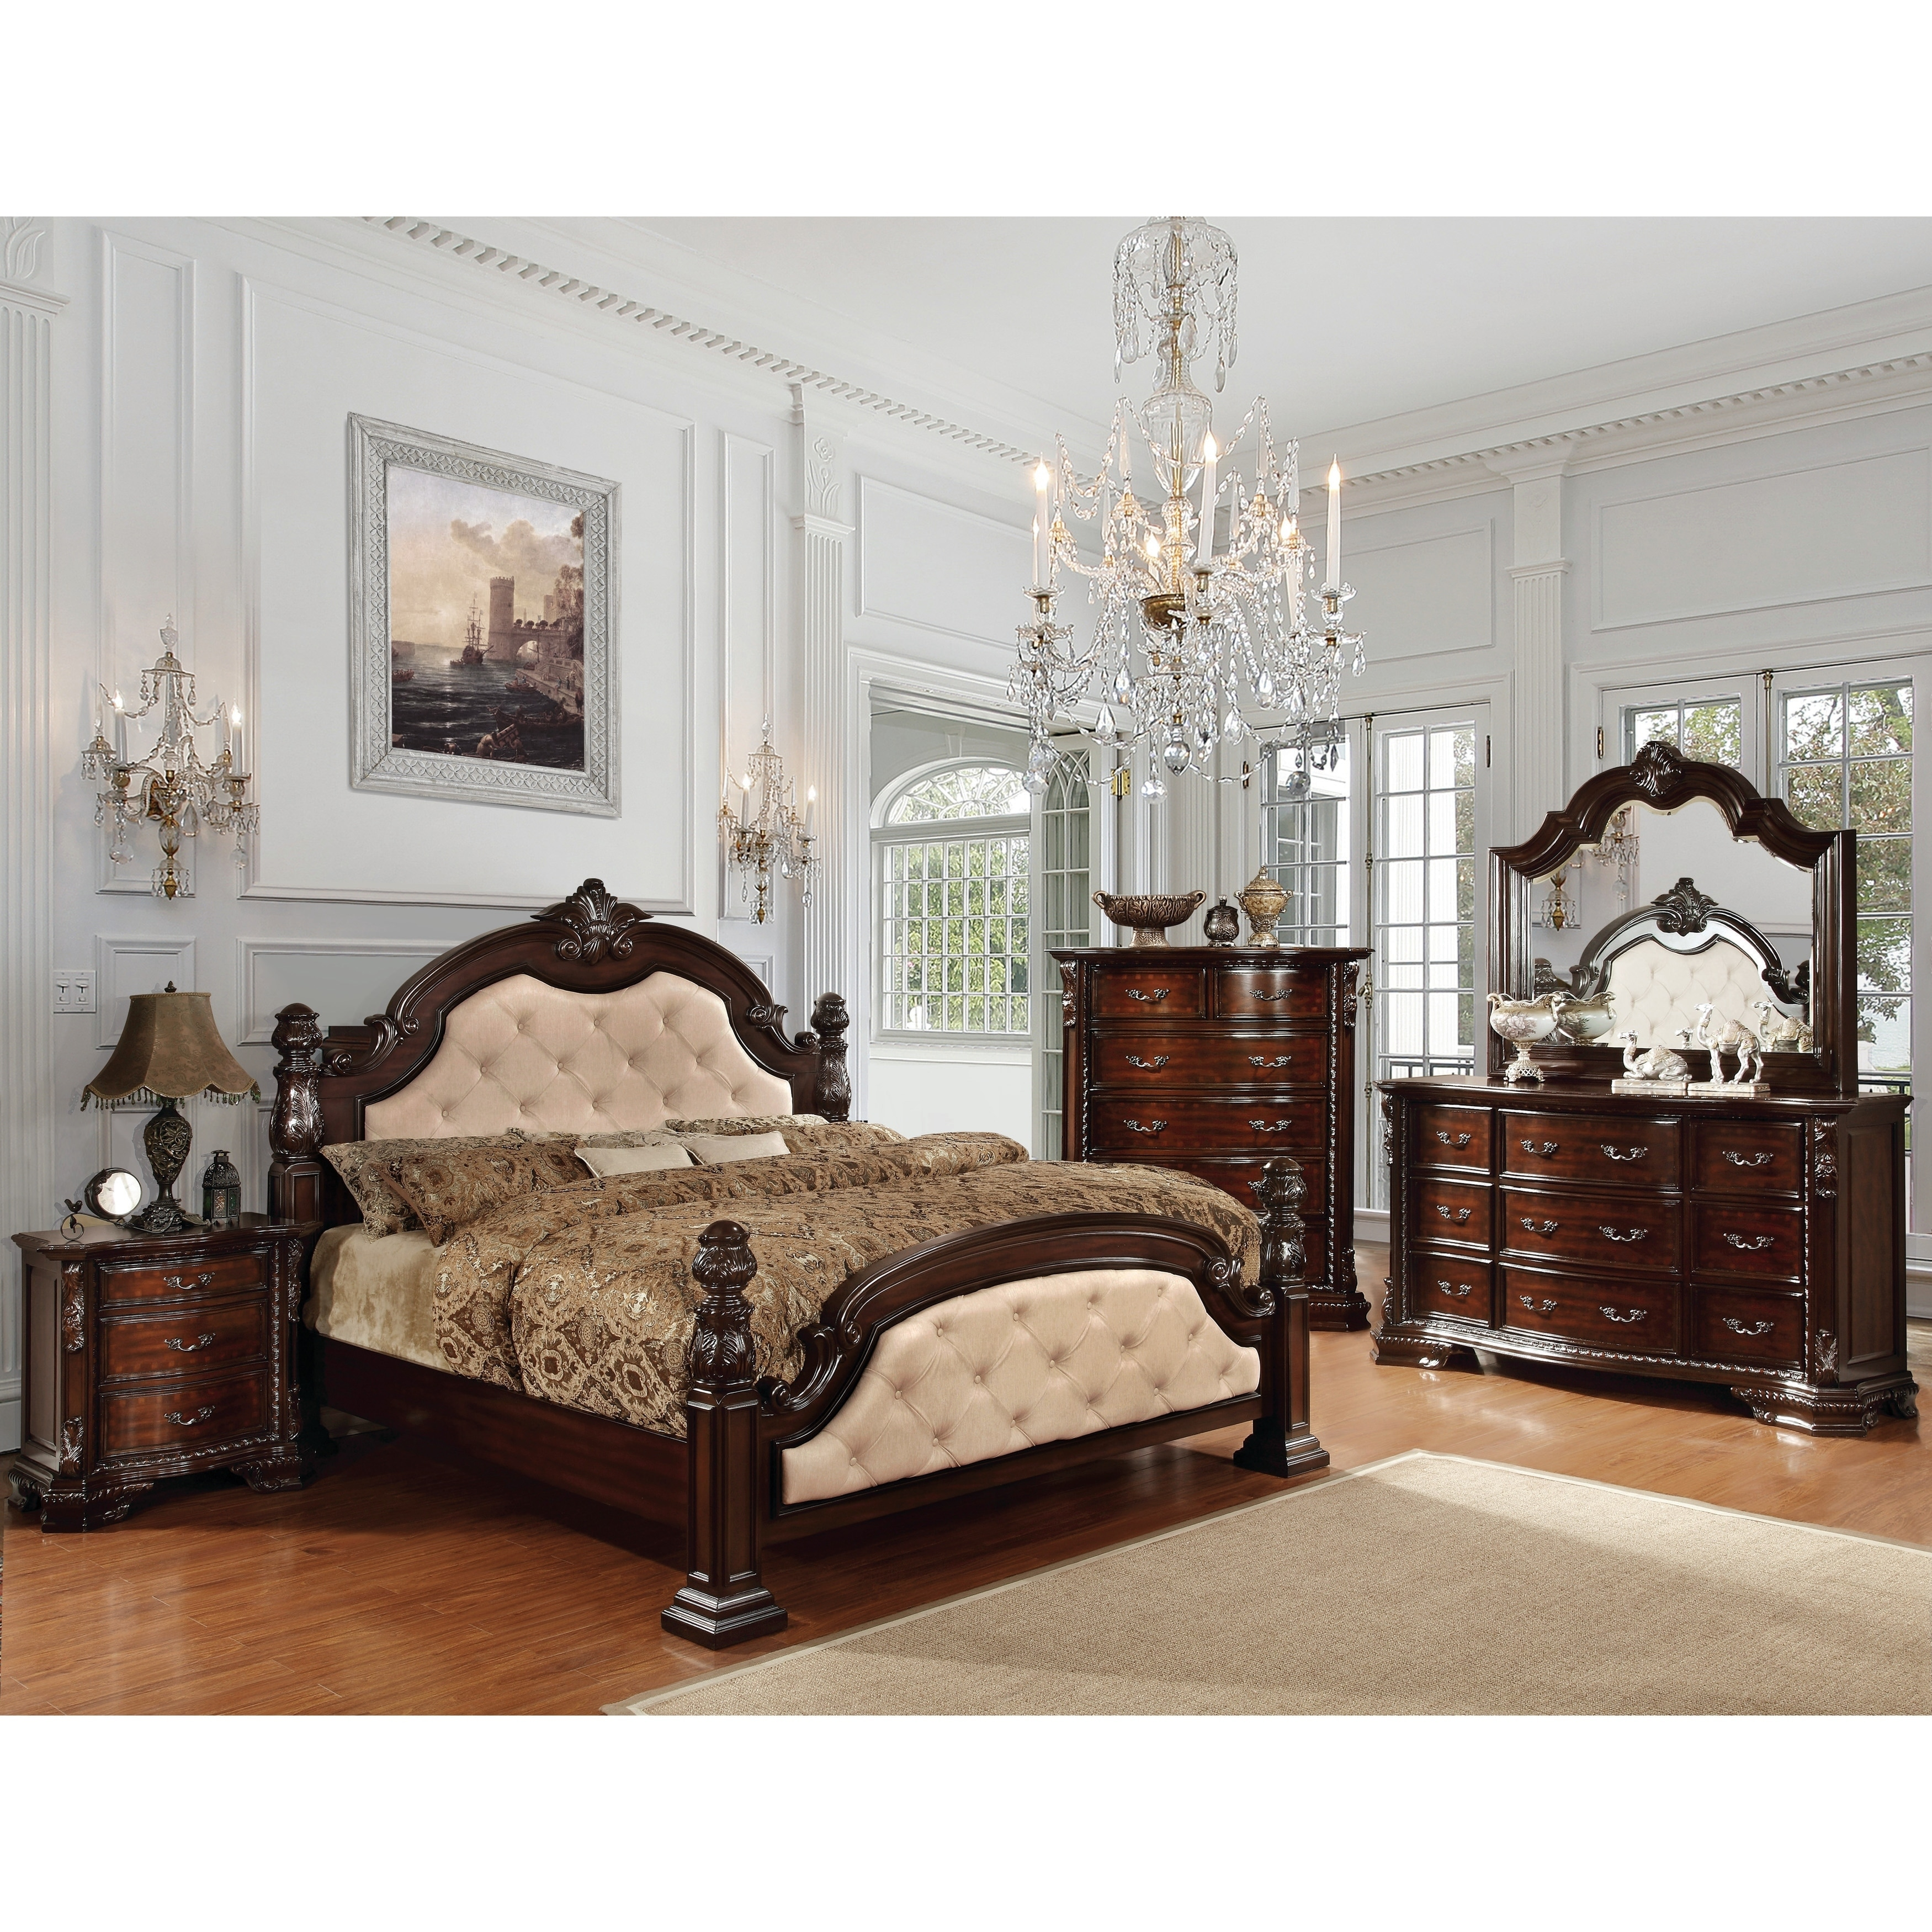 Shop Furniture Of America Vace Traditional Solid Wood 4 Piece